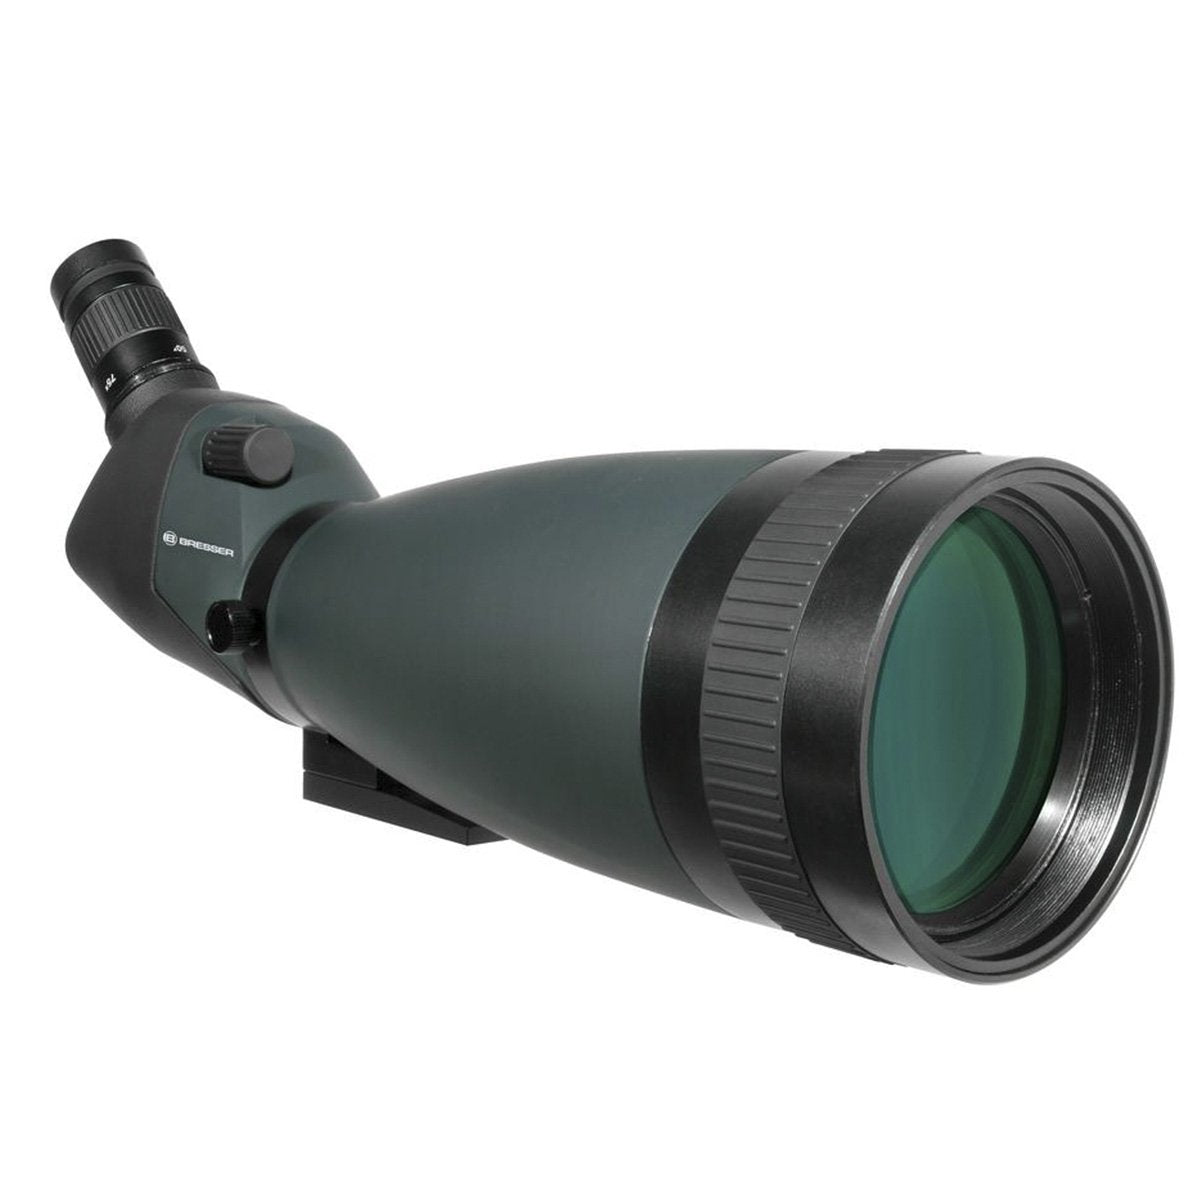 Bresser Pirsch 25-75X100 45° Zoom Spotting Scope